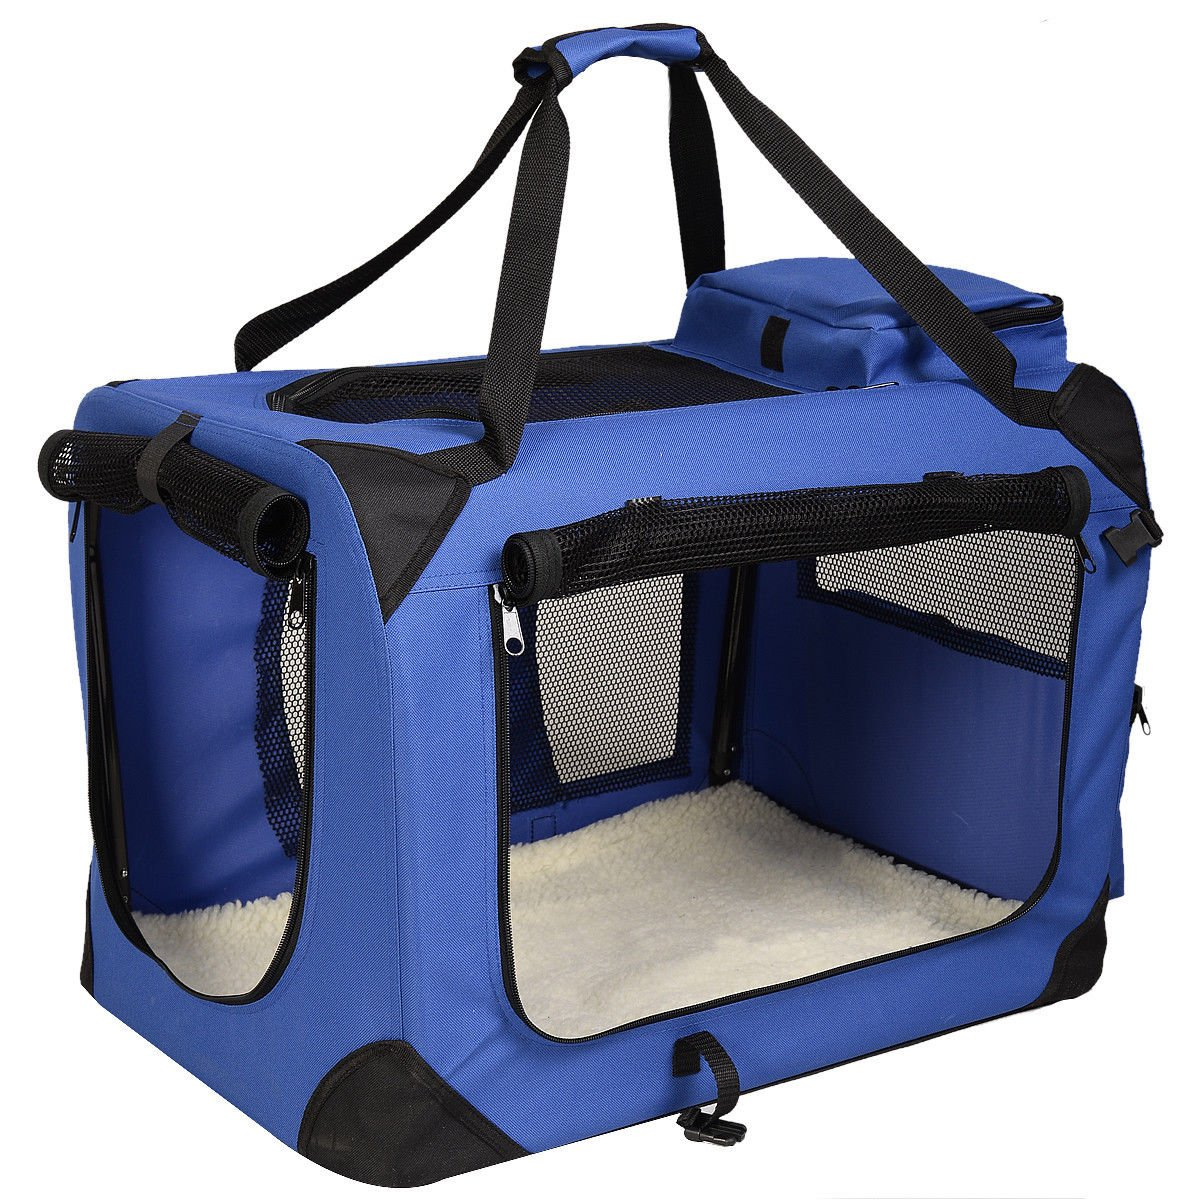 Pet Dog Carrier Portable House Soft Sided Cat Comfort Travel Tote Bag (32x23x23 Inches, Blue)